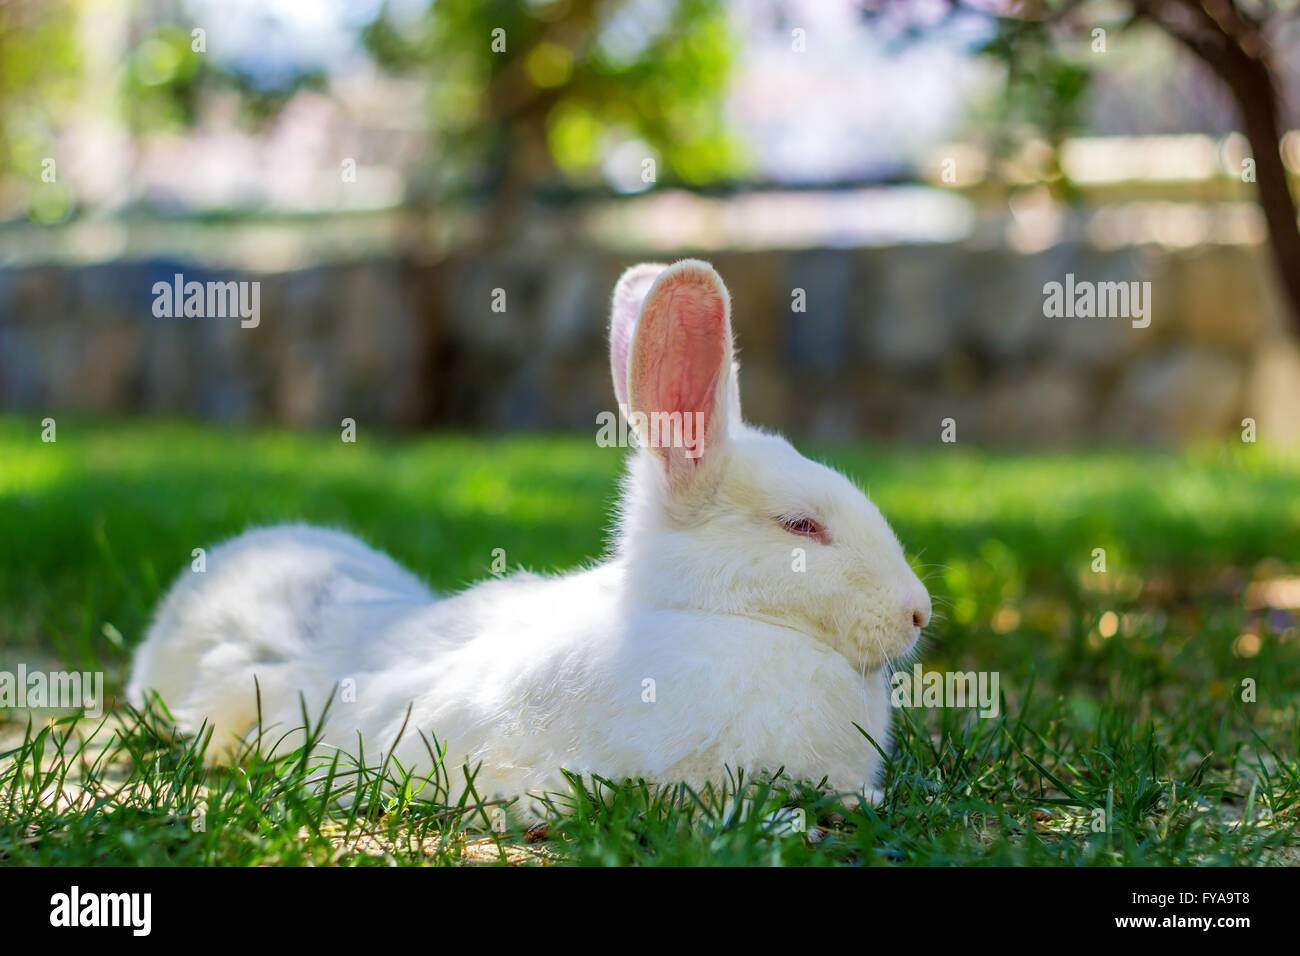 White rabbit on the green grass in april - Stock Image